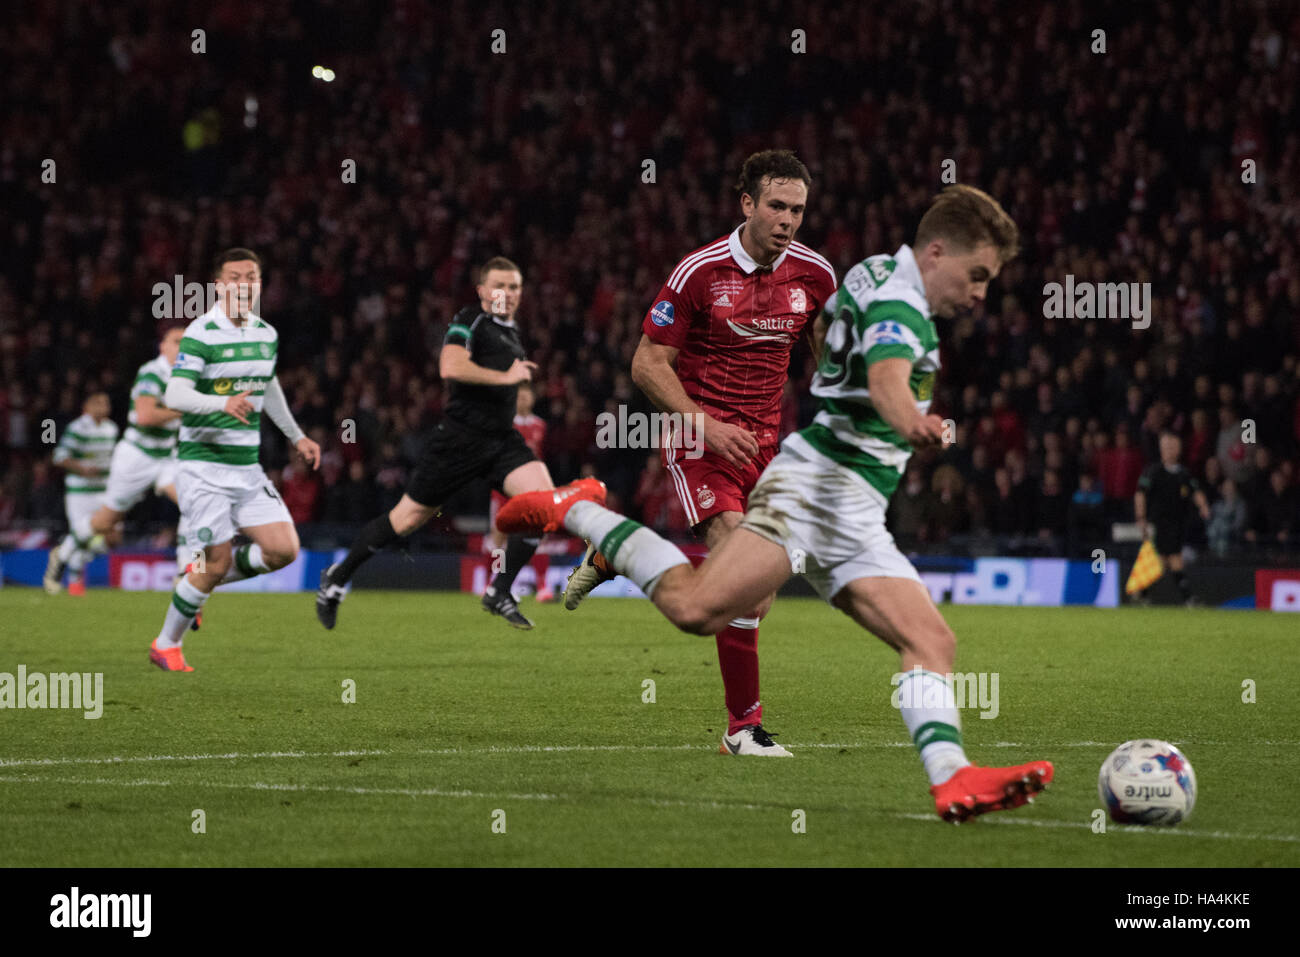 Celtic v Aberdeen; Betrfred League Cup Final, Glasgow, UK. 27th Nov, 2016.  James Forrest on the attack Credit: - Stock Image